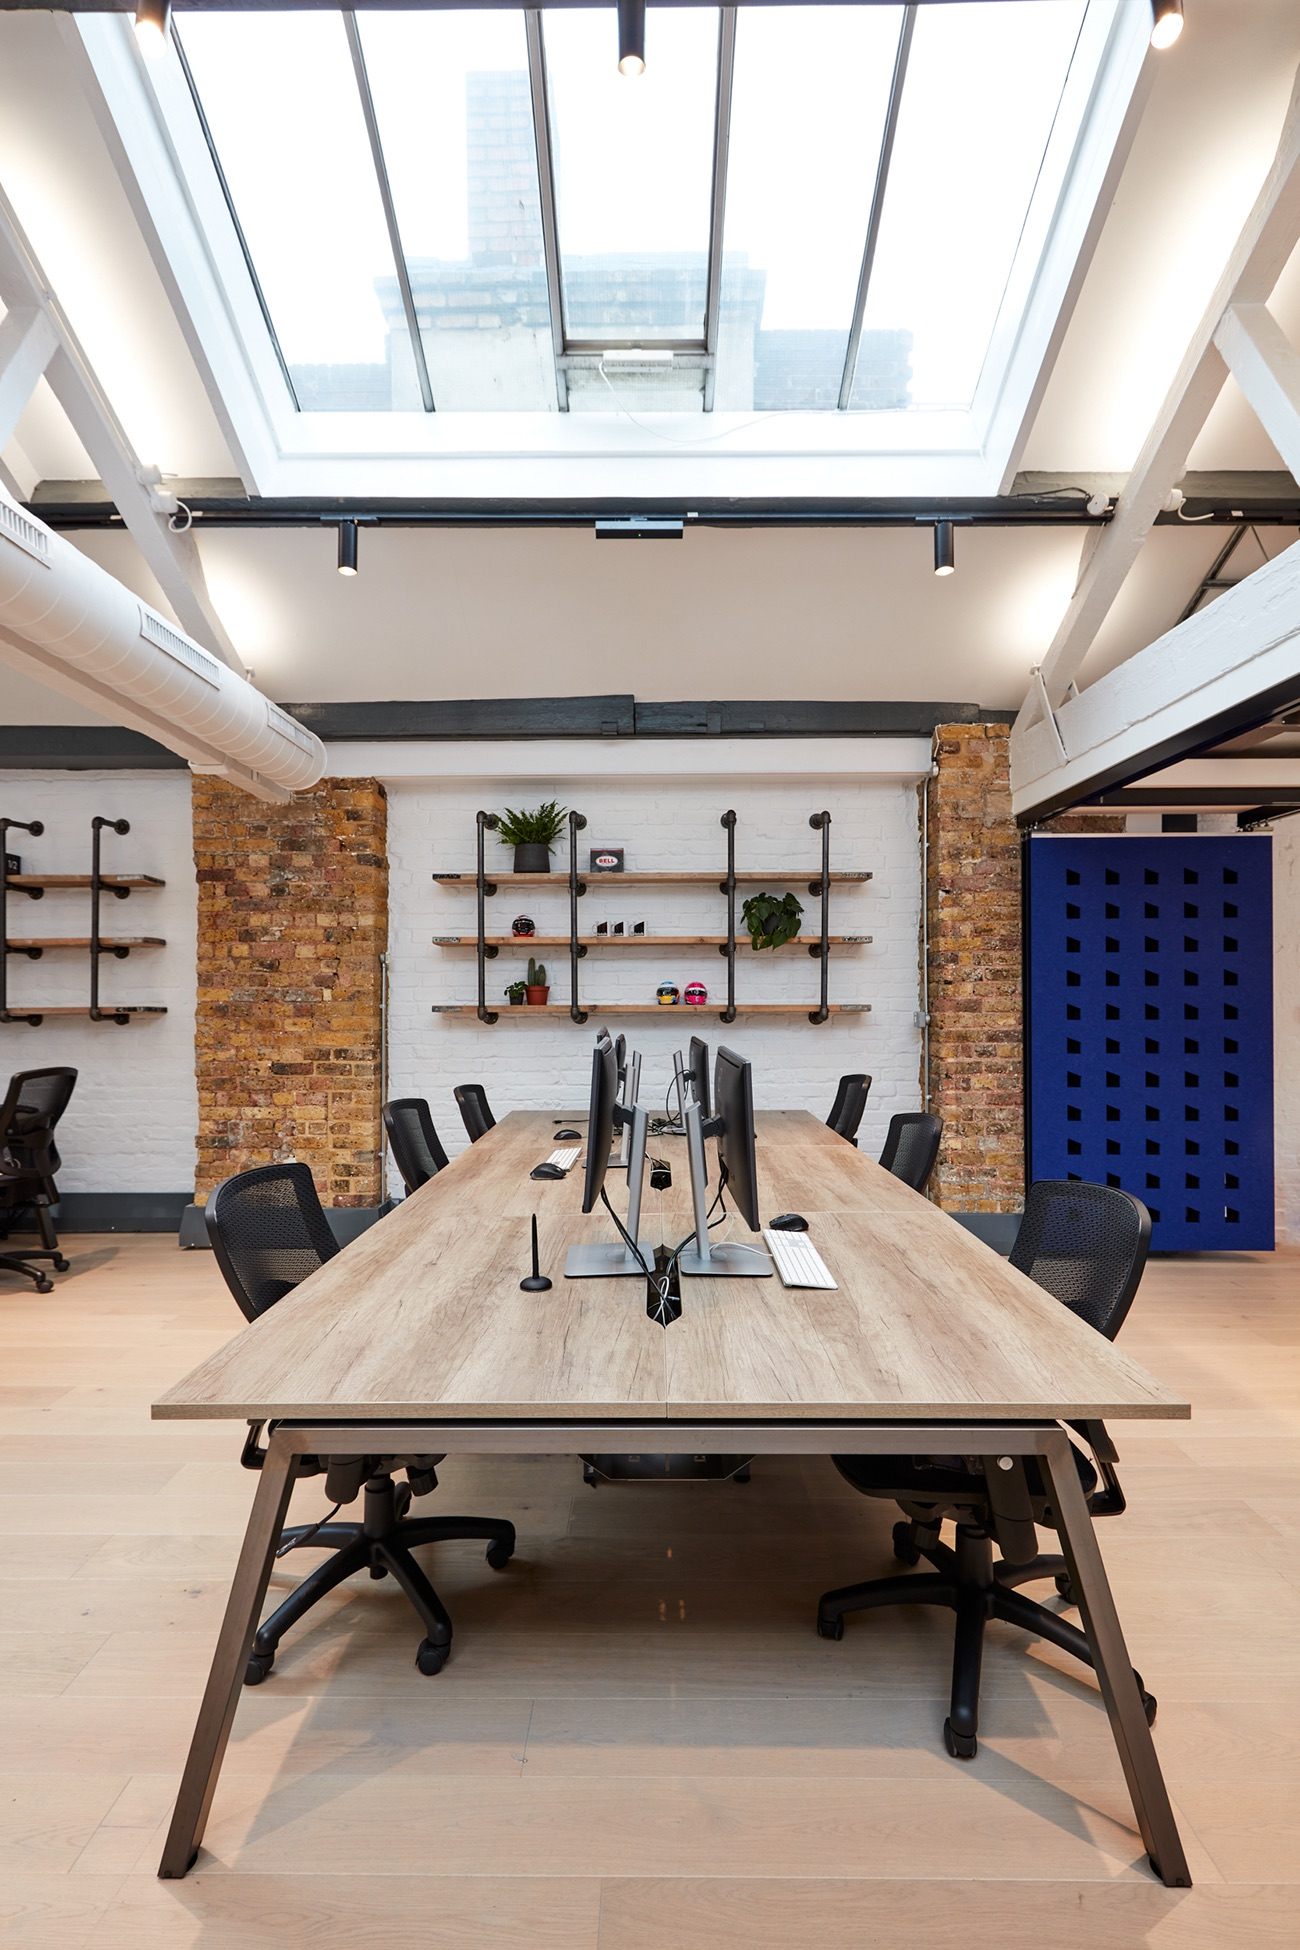 A Look Inside Hutch Games' London Office Expansion